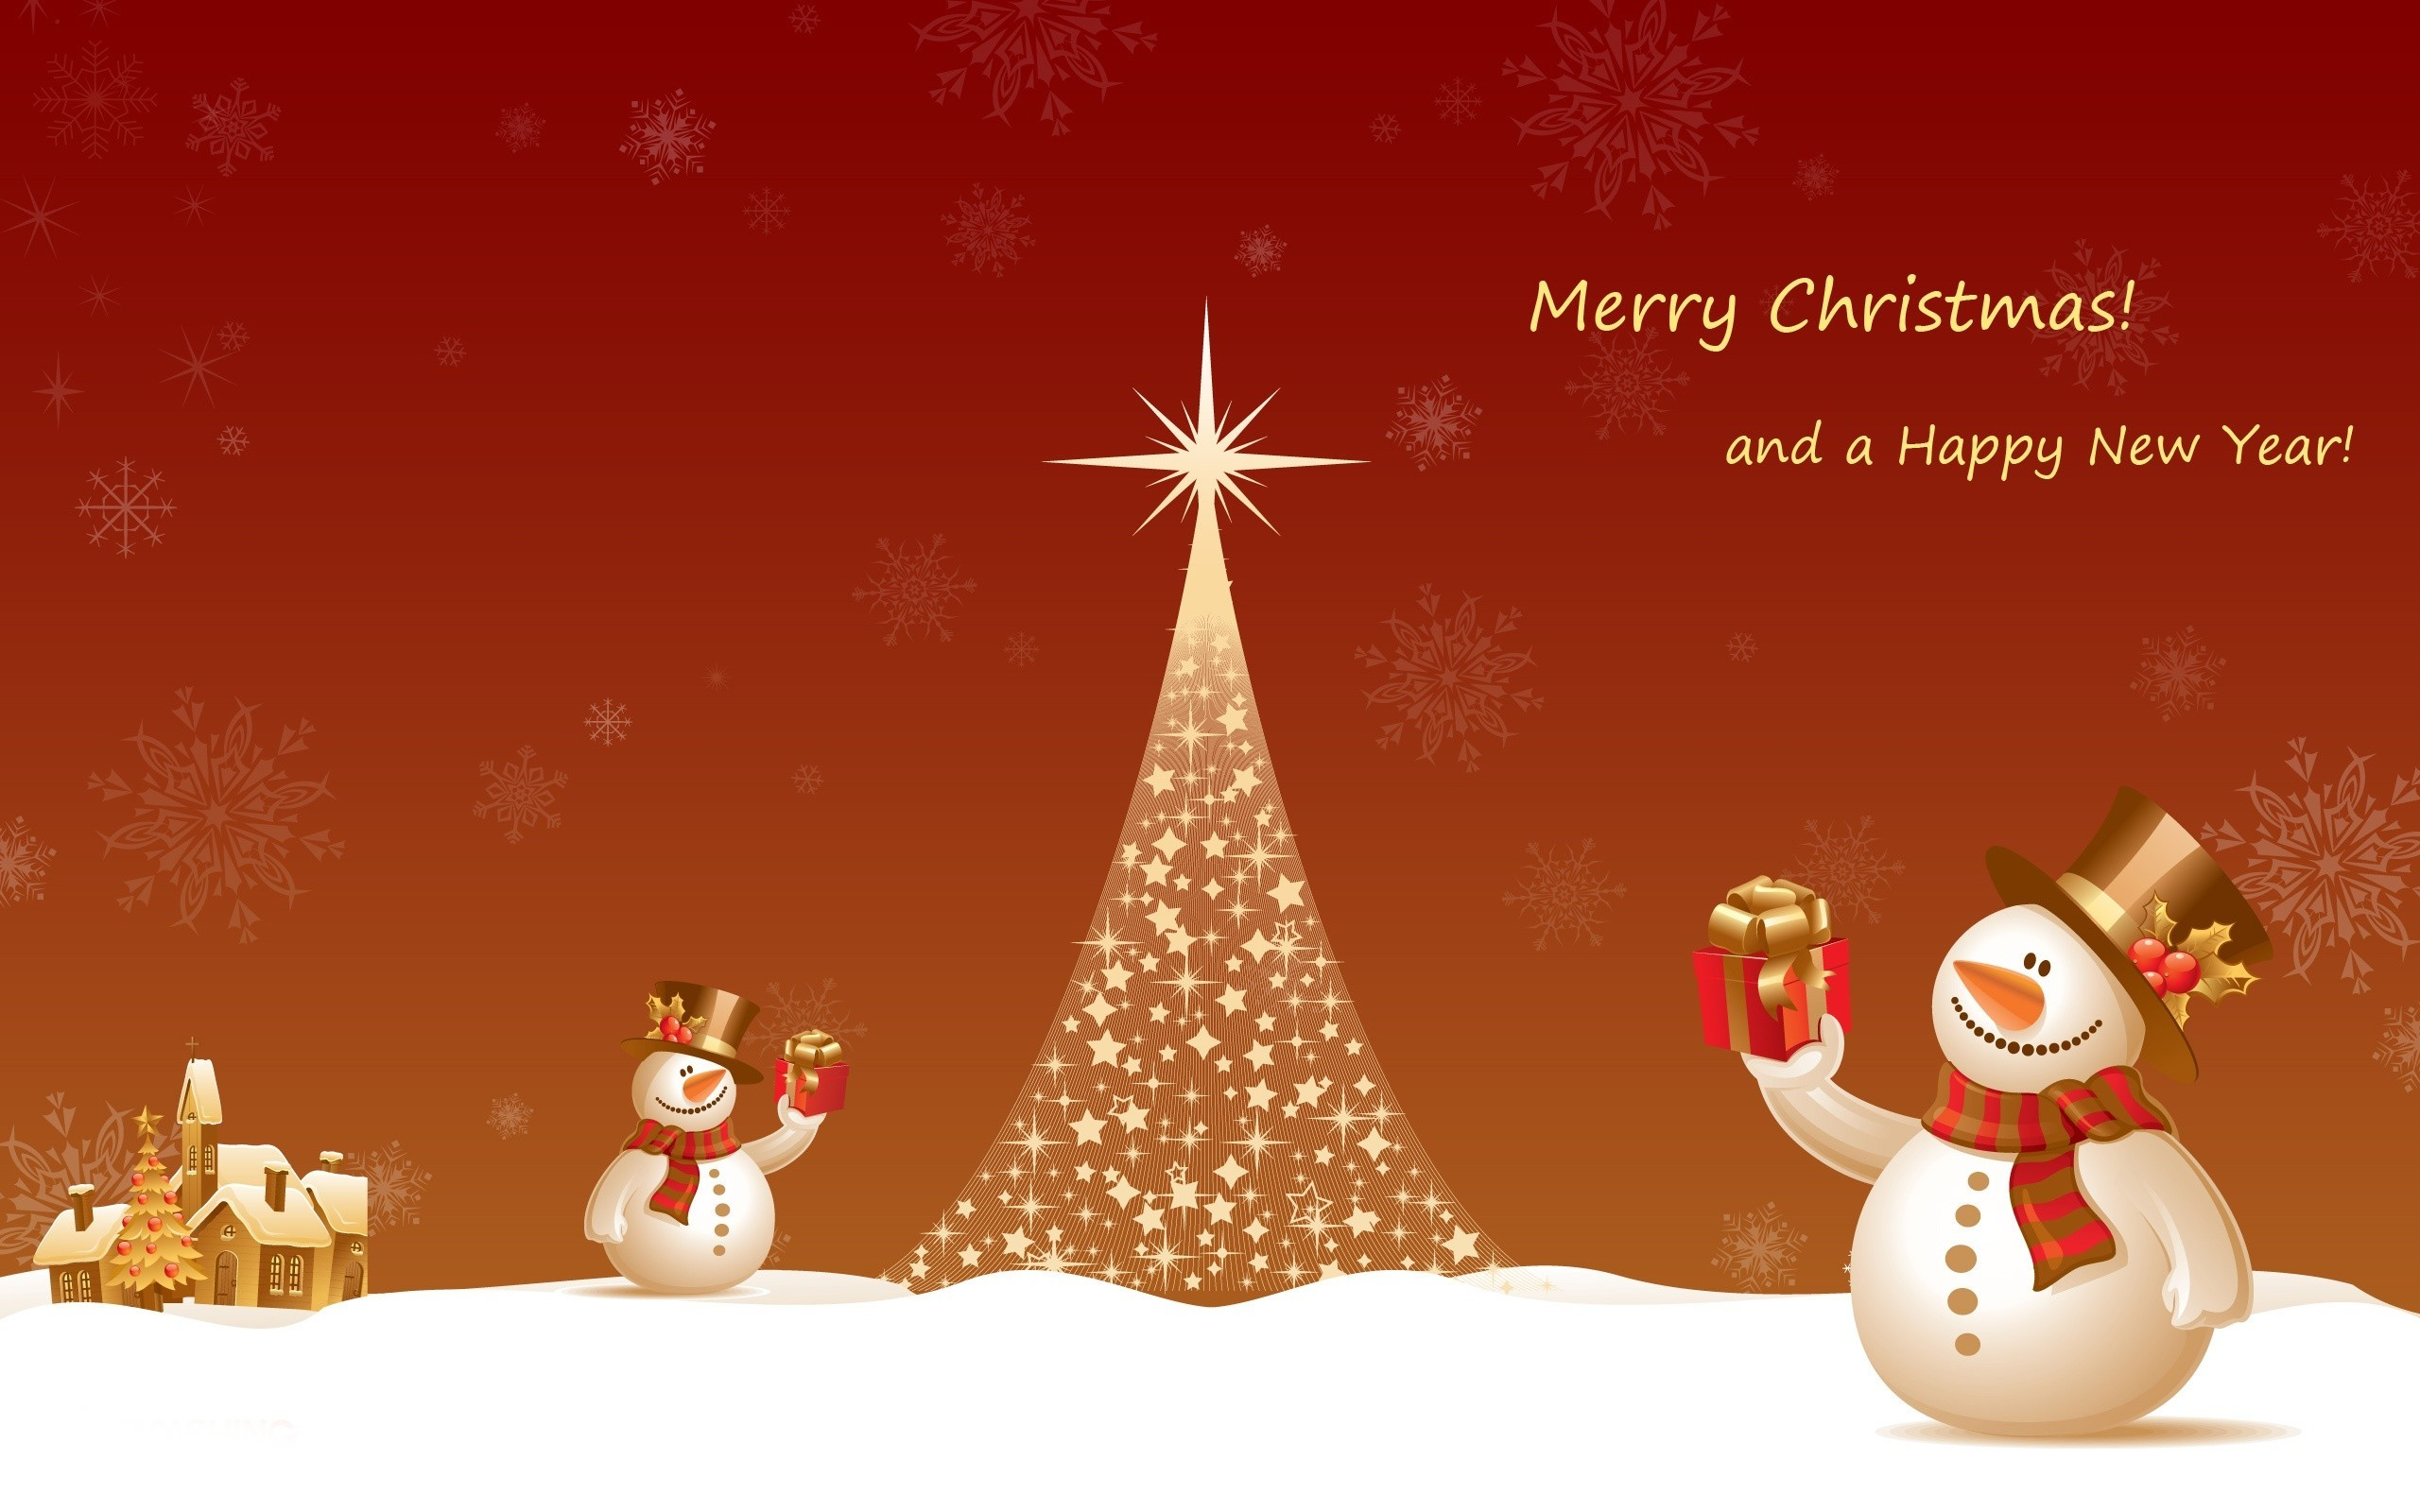 Res: 2560x1600, 2560x1440 Wallpapers Holy Christmas Wallpaper For Desktop Christmas